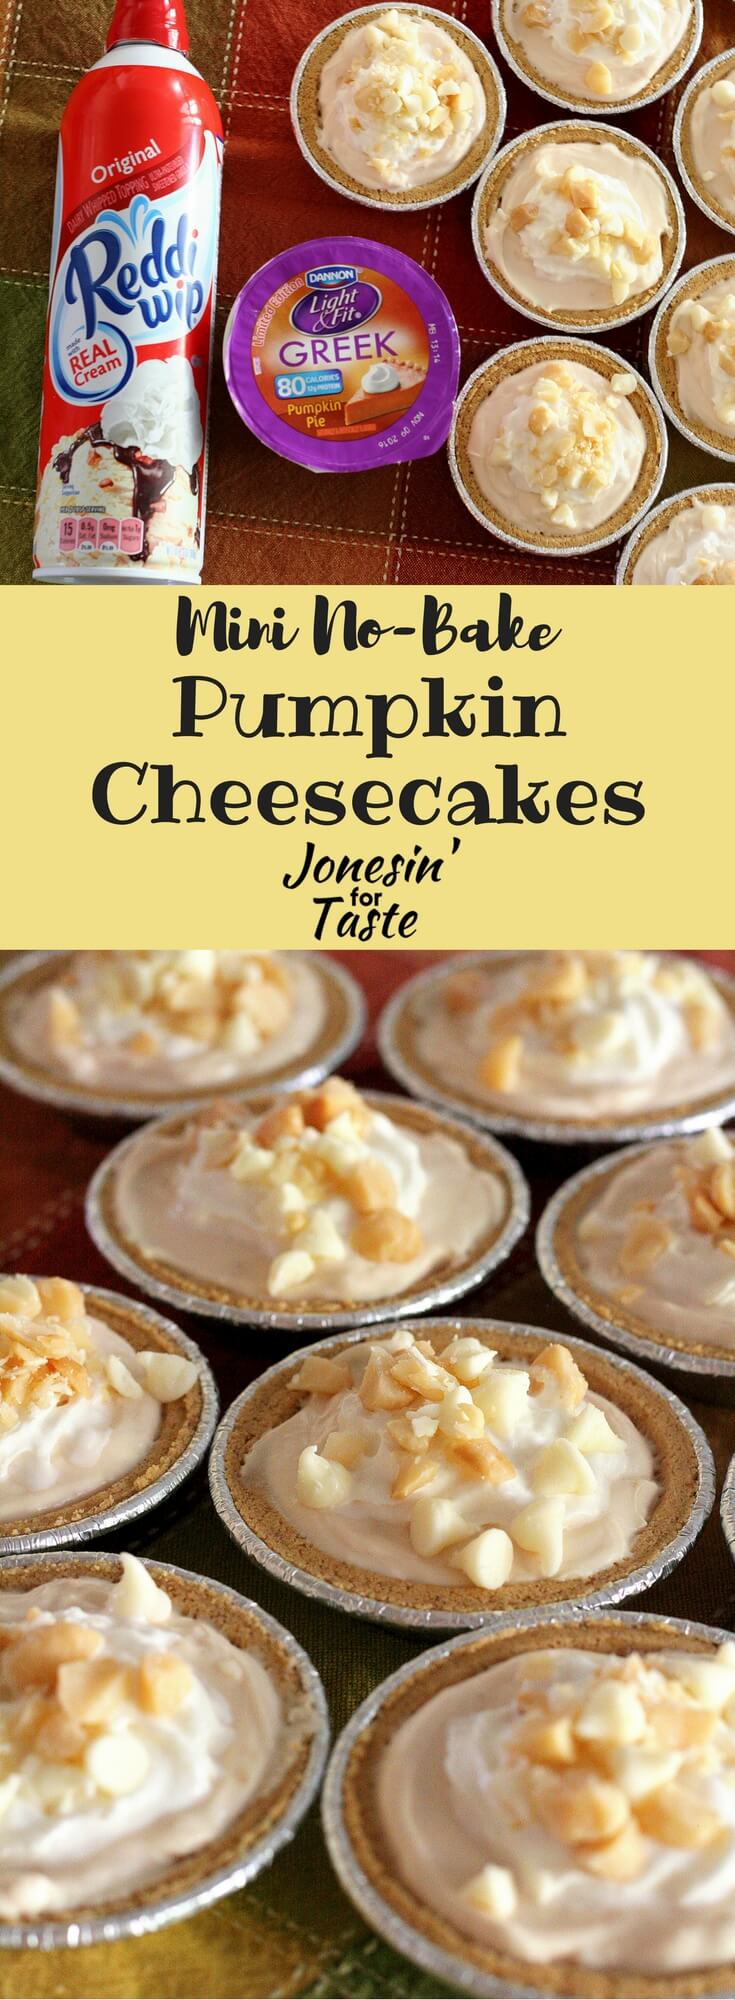 #ad You need just 6 ingredients to make this luscious lightened up Mini No-Bake Pumpkin Cheesecake that takes only 10 minutes to make!